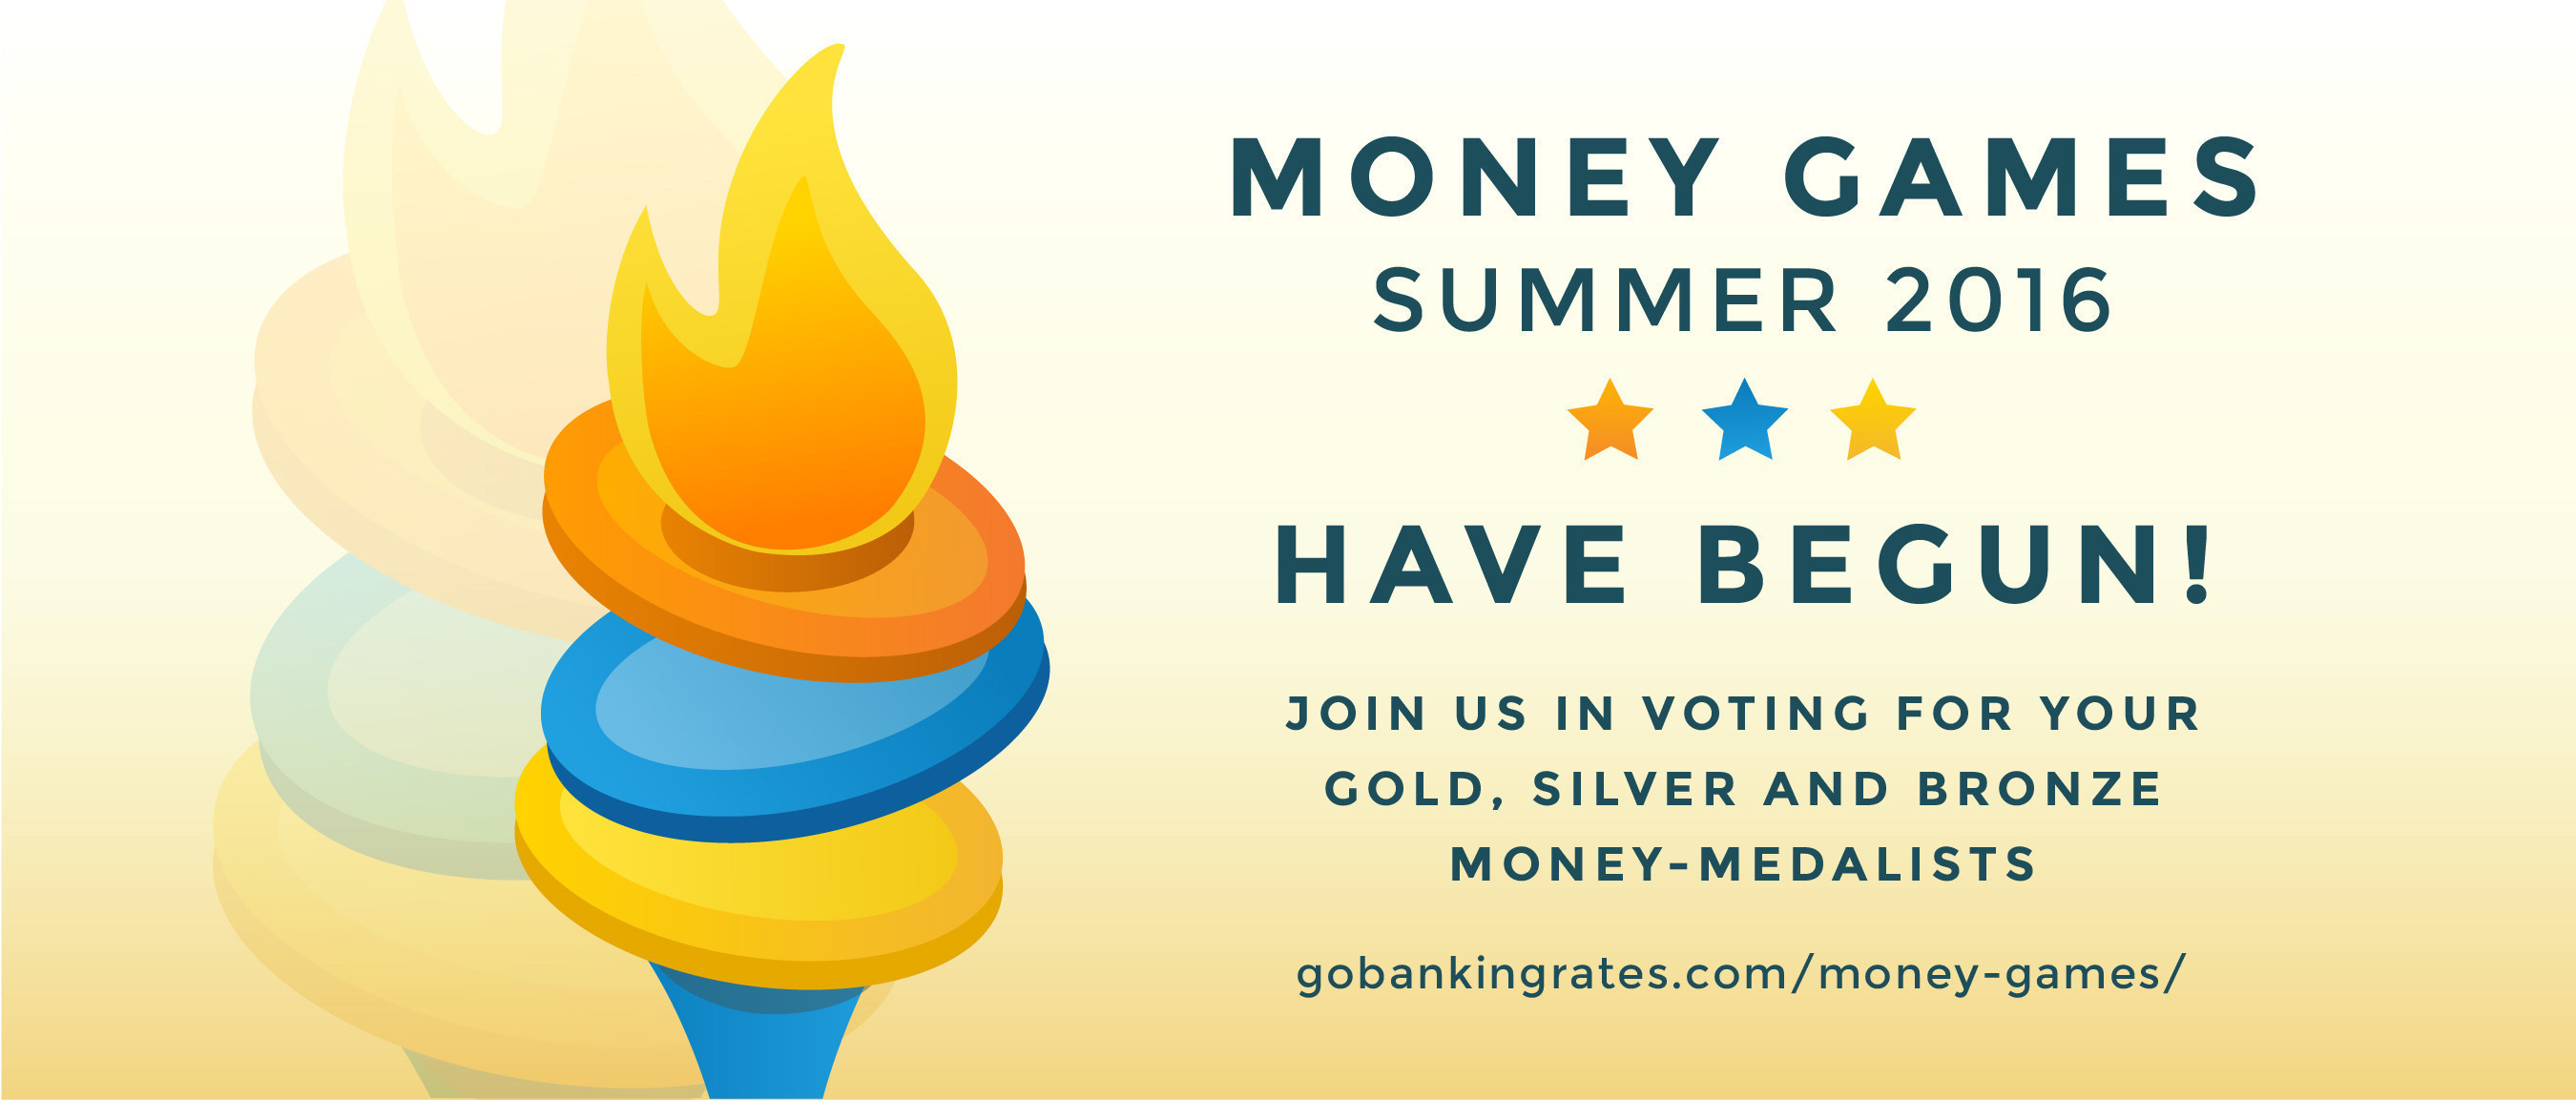 Ready, Set, Vote Now! The #MoneyGames Competition Hosted by GOBankingRates Is On